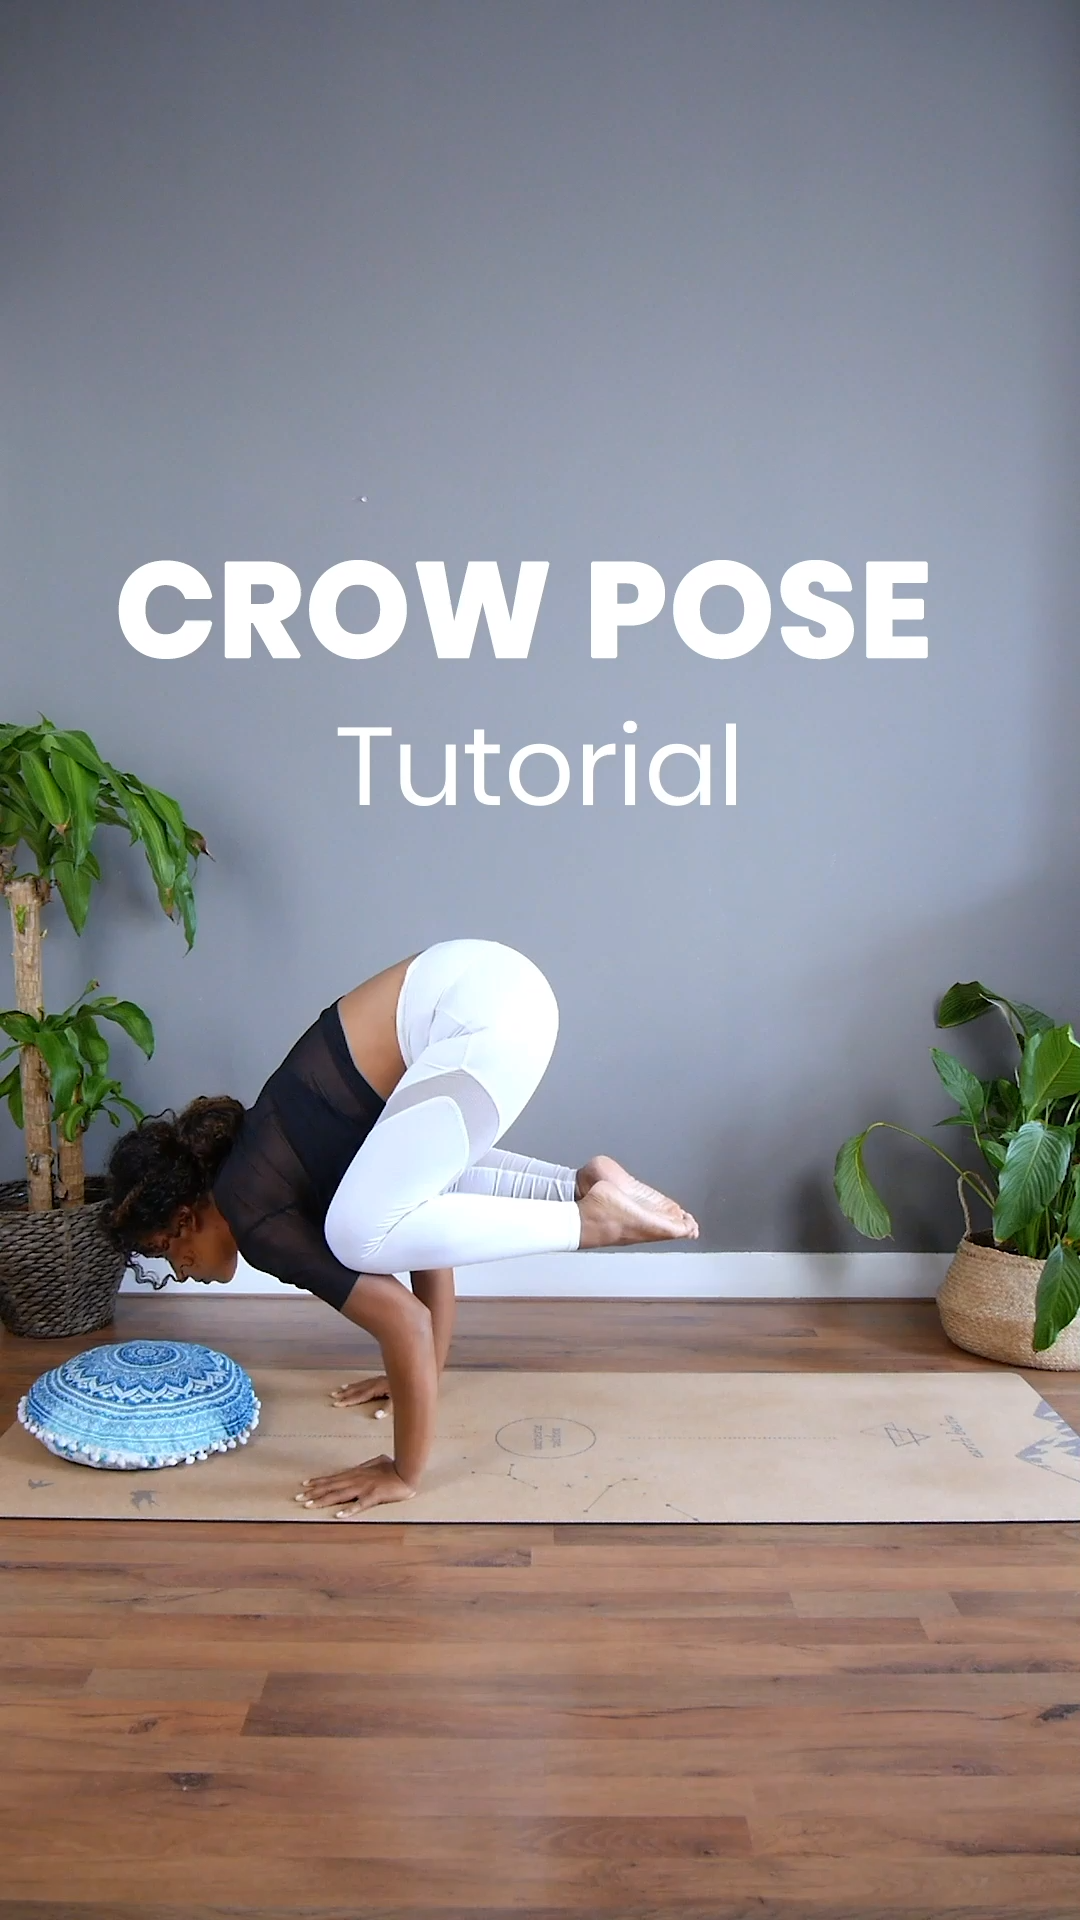 Here are 10 easy beginner postures to prepare your body to get in in to crow pose. Practice these postures step by step and you will increase your strength! Crow is a very advanced yoga pose so be aware that this may take days, weeks, or months to accomplish depending on how strong you are already. Be gentle and kind to your body and remember: Practice and all is coming #Yoga#YogaFacts#crowpose#crow#tutorial#yogaforbeginners#forbeginners#yogatutorial